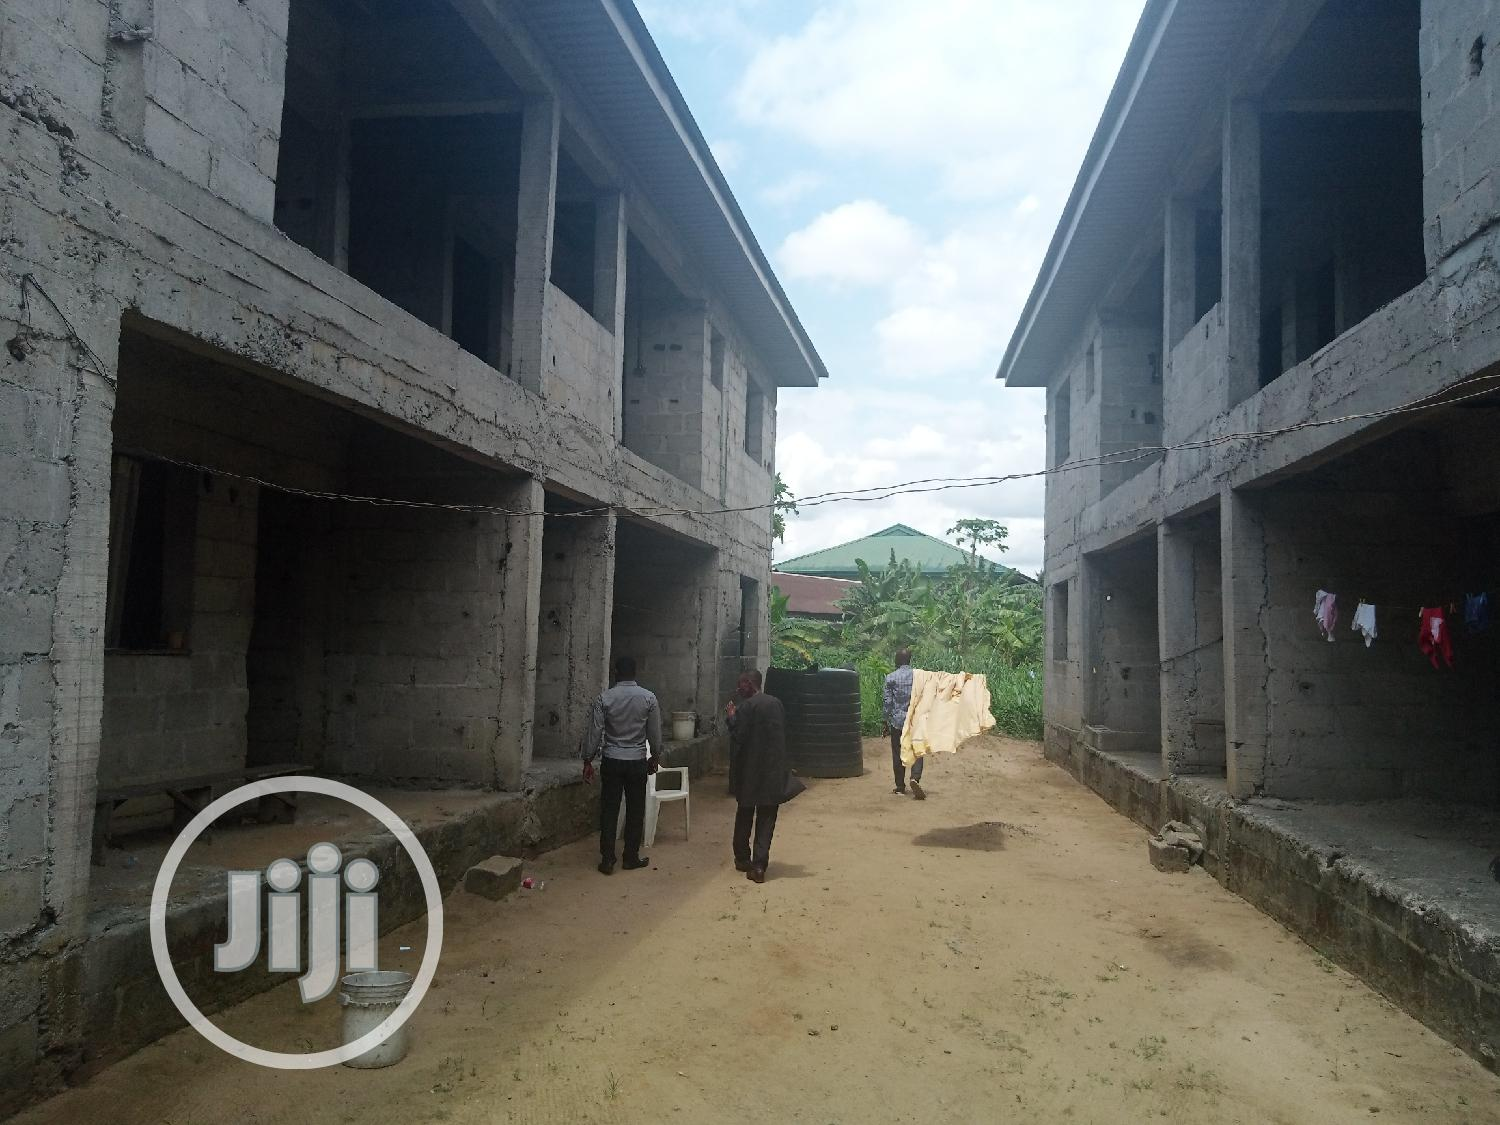 2 Bedrooms Flat for Sale Port-Harcourt | Houses & Apartments For Sale for sale in Port-Harcourt, Rivers State, Nigeria